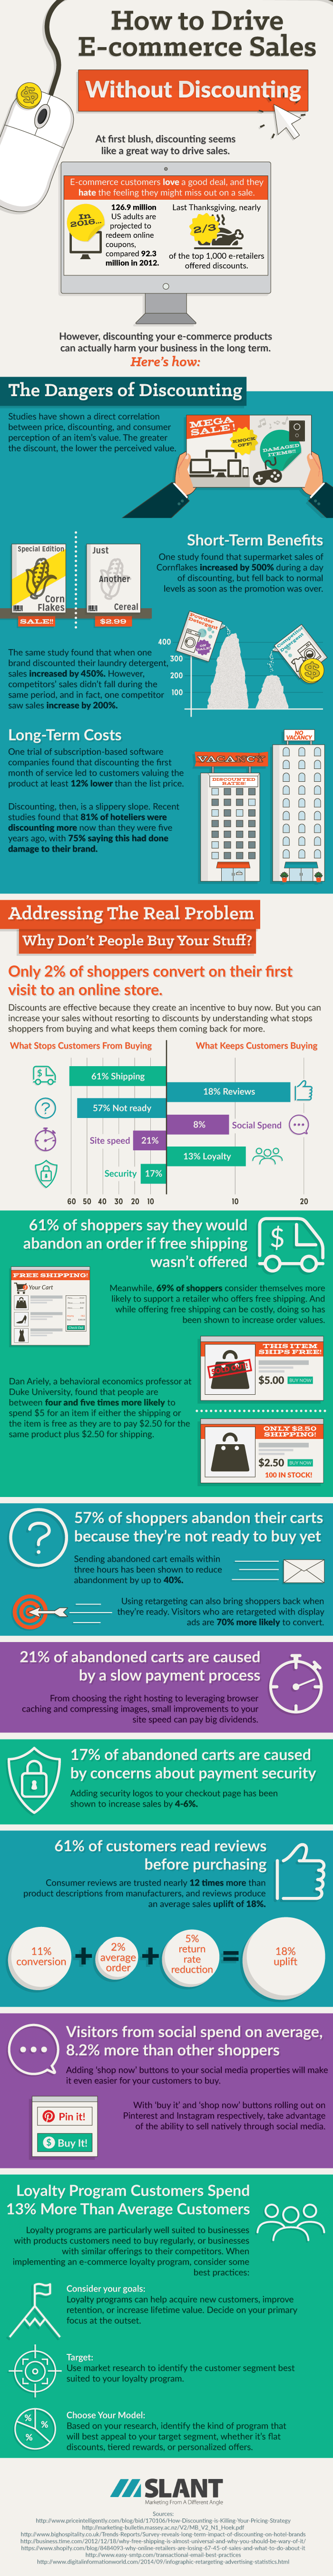 Discounting Infographic